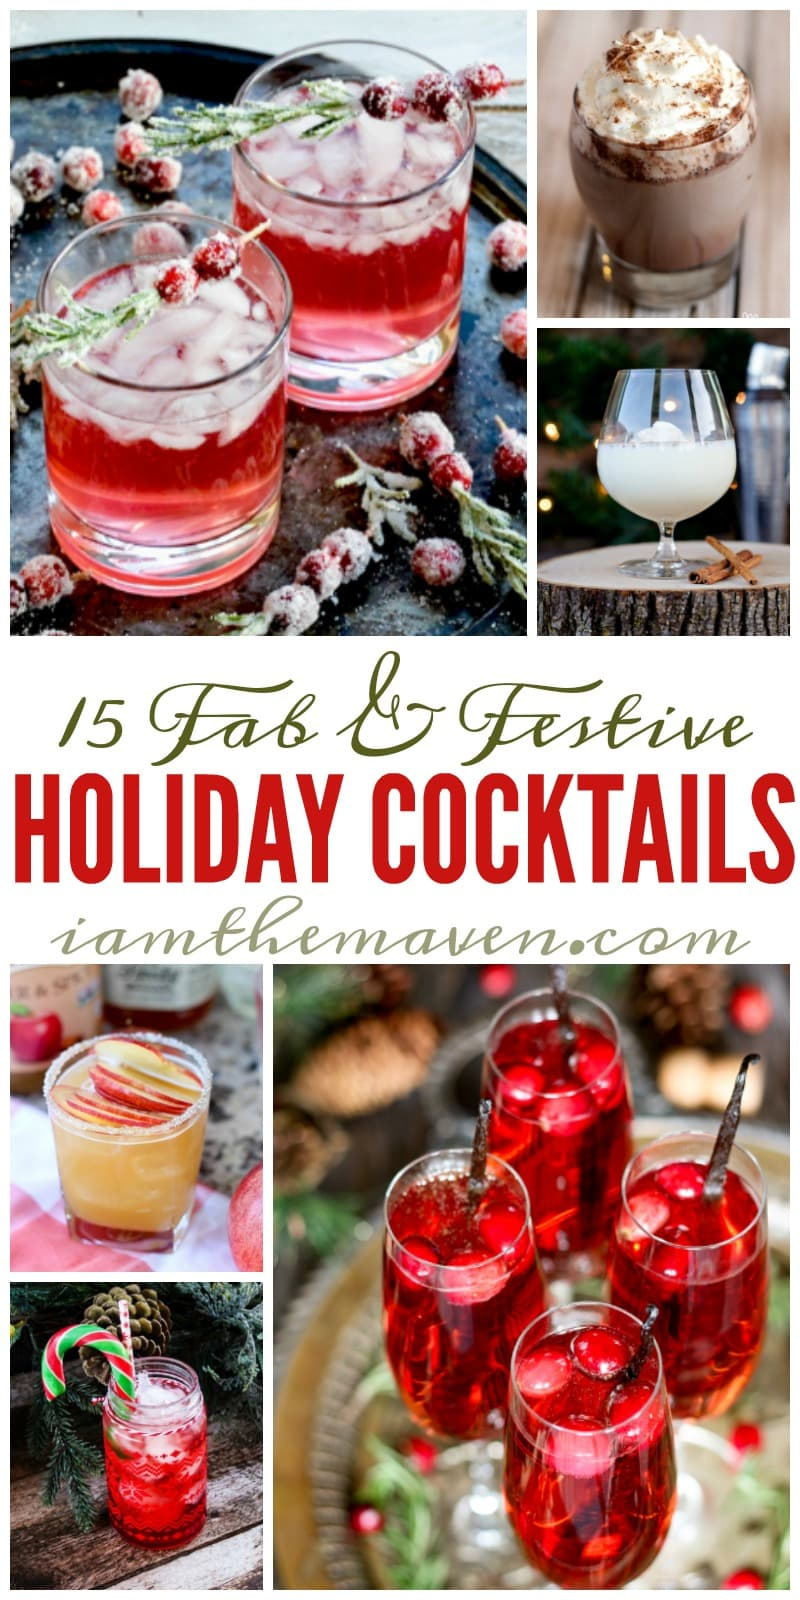 It's time to eat, drink and be merry with these holiday cocktails! Don't worry, I won't tell anyone if you're NOT having a party!